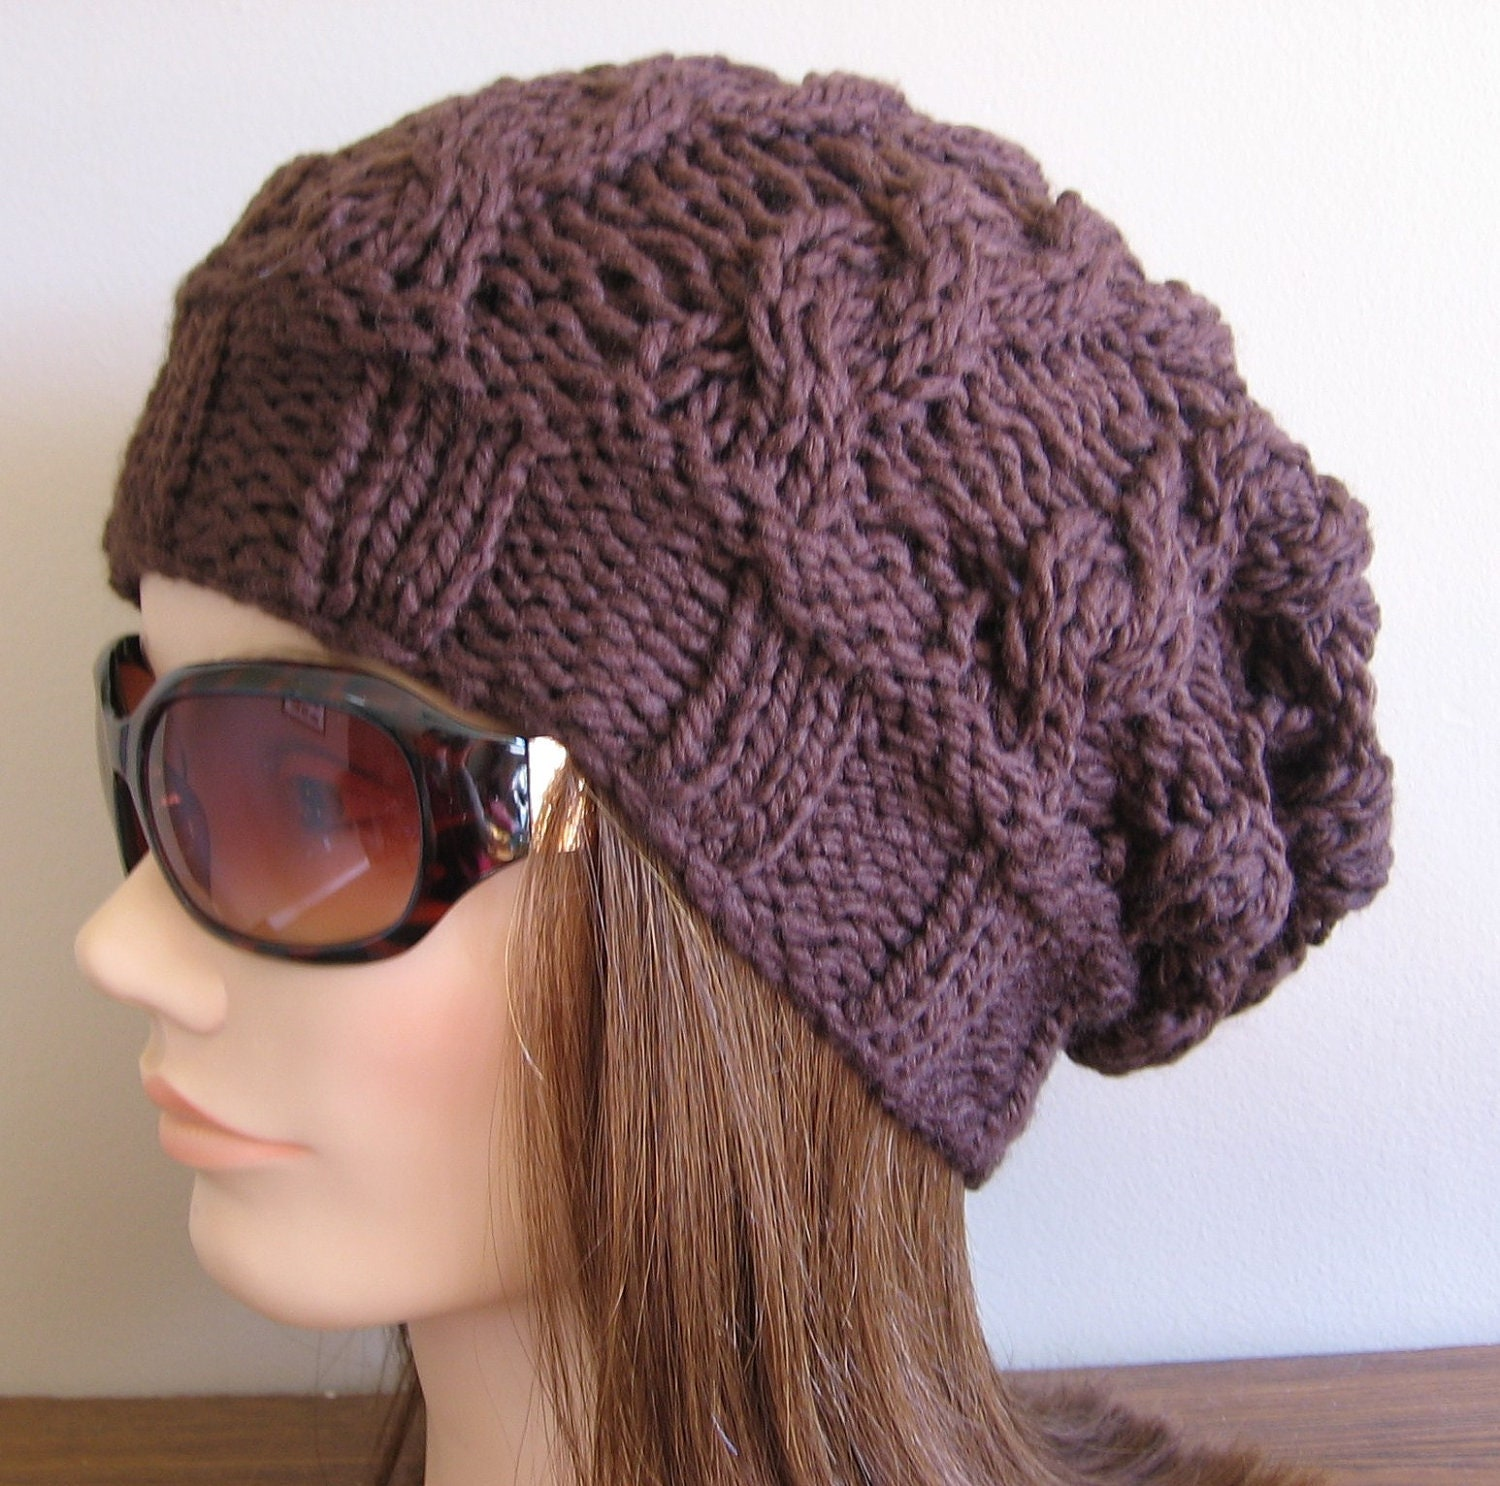 Knitting Patterns Free Slouchy Hat : PDF Knitting Pattern Knit Slouchy Hat / Lyra